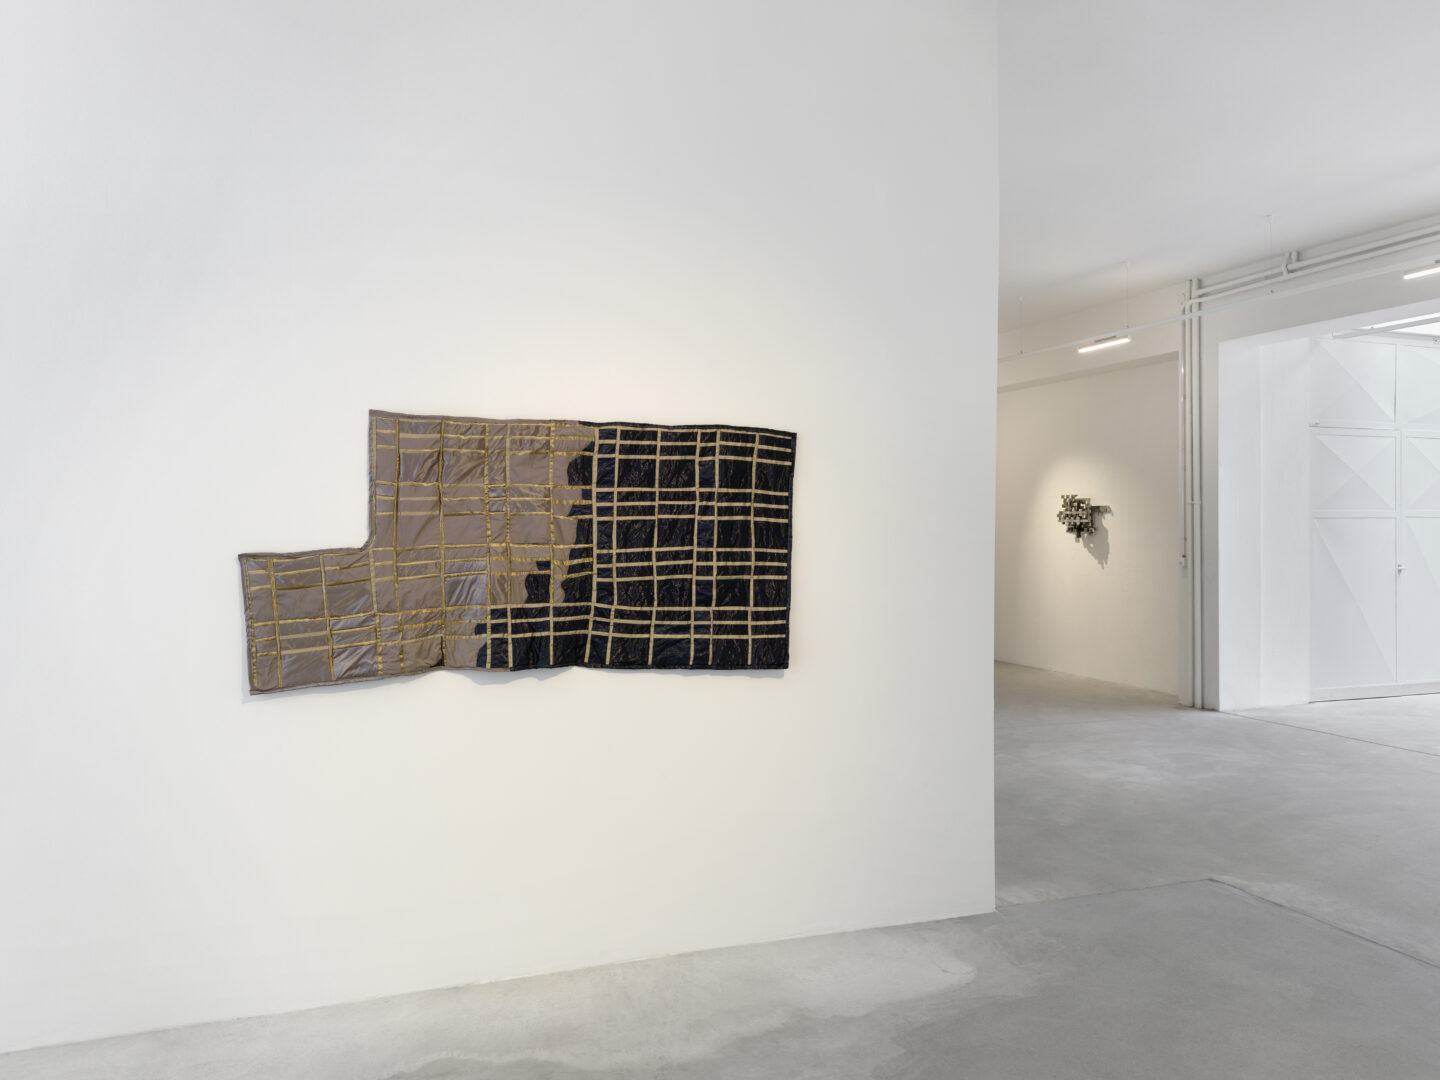 Exhibition View Anne Libby Soloshow «Form Constant» at Ribordy Thetaz, Geneva, 2019 / Photo: Annik Wetter / Courtesy: the artist and Ribordy Thetaz